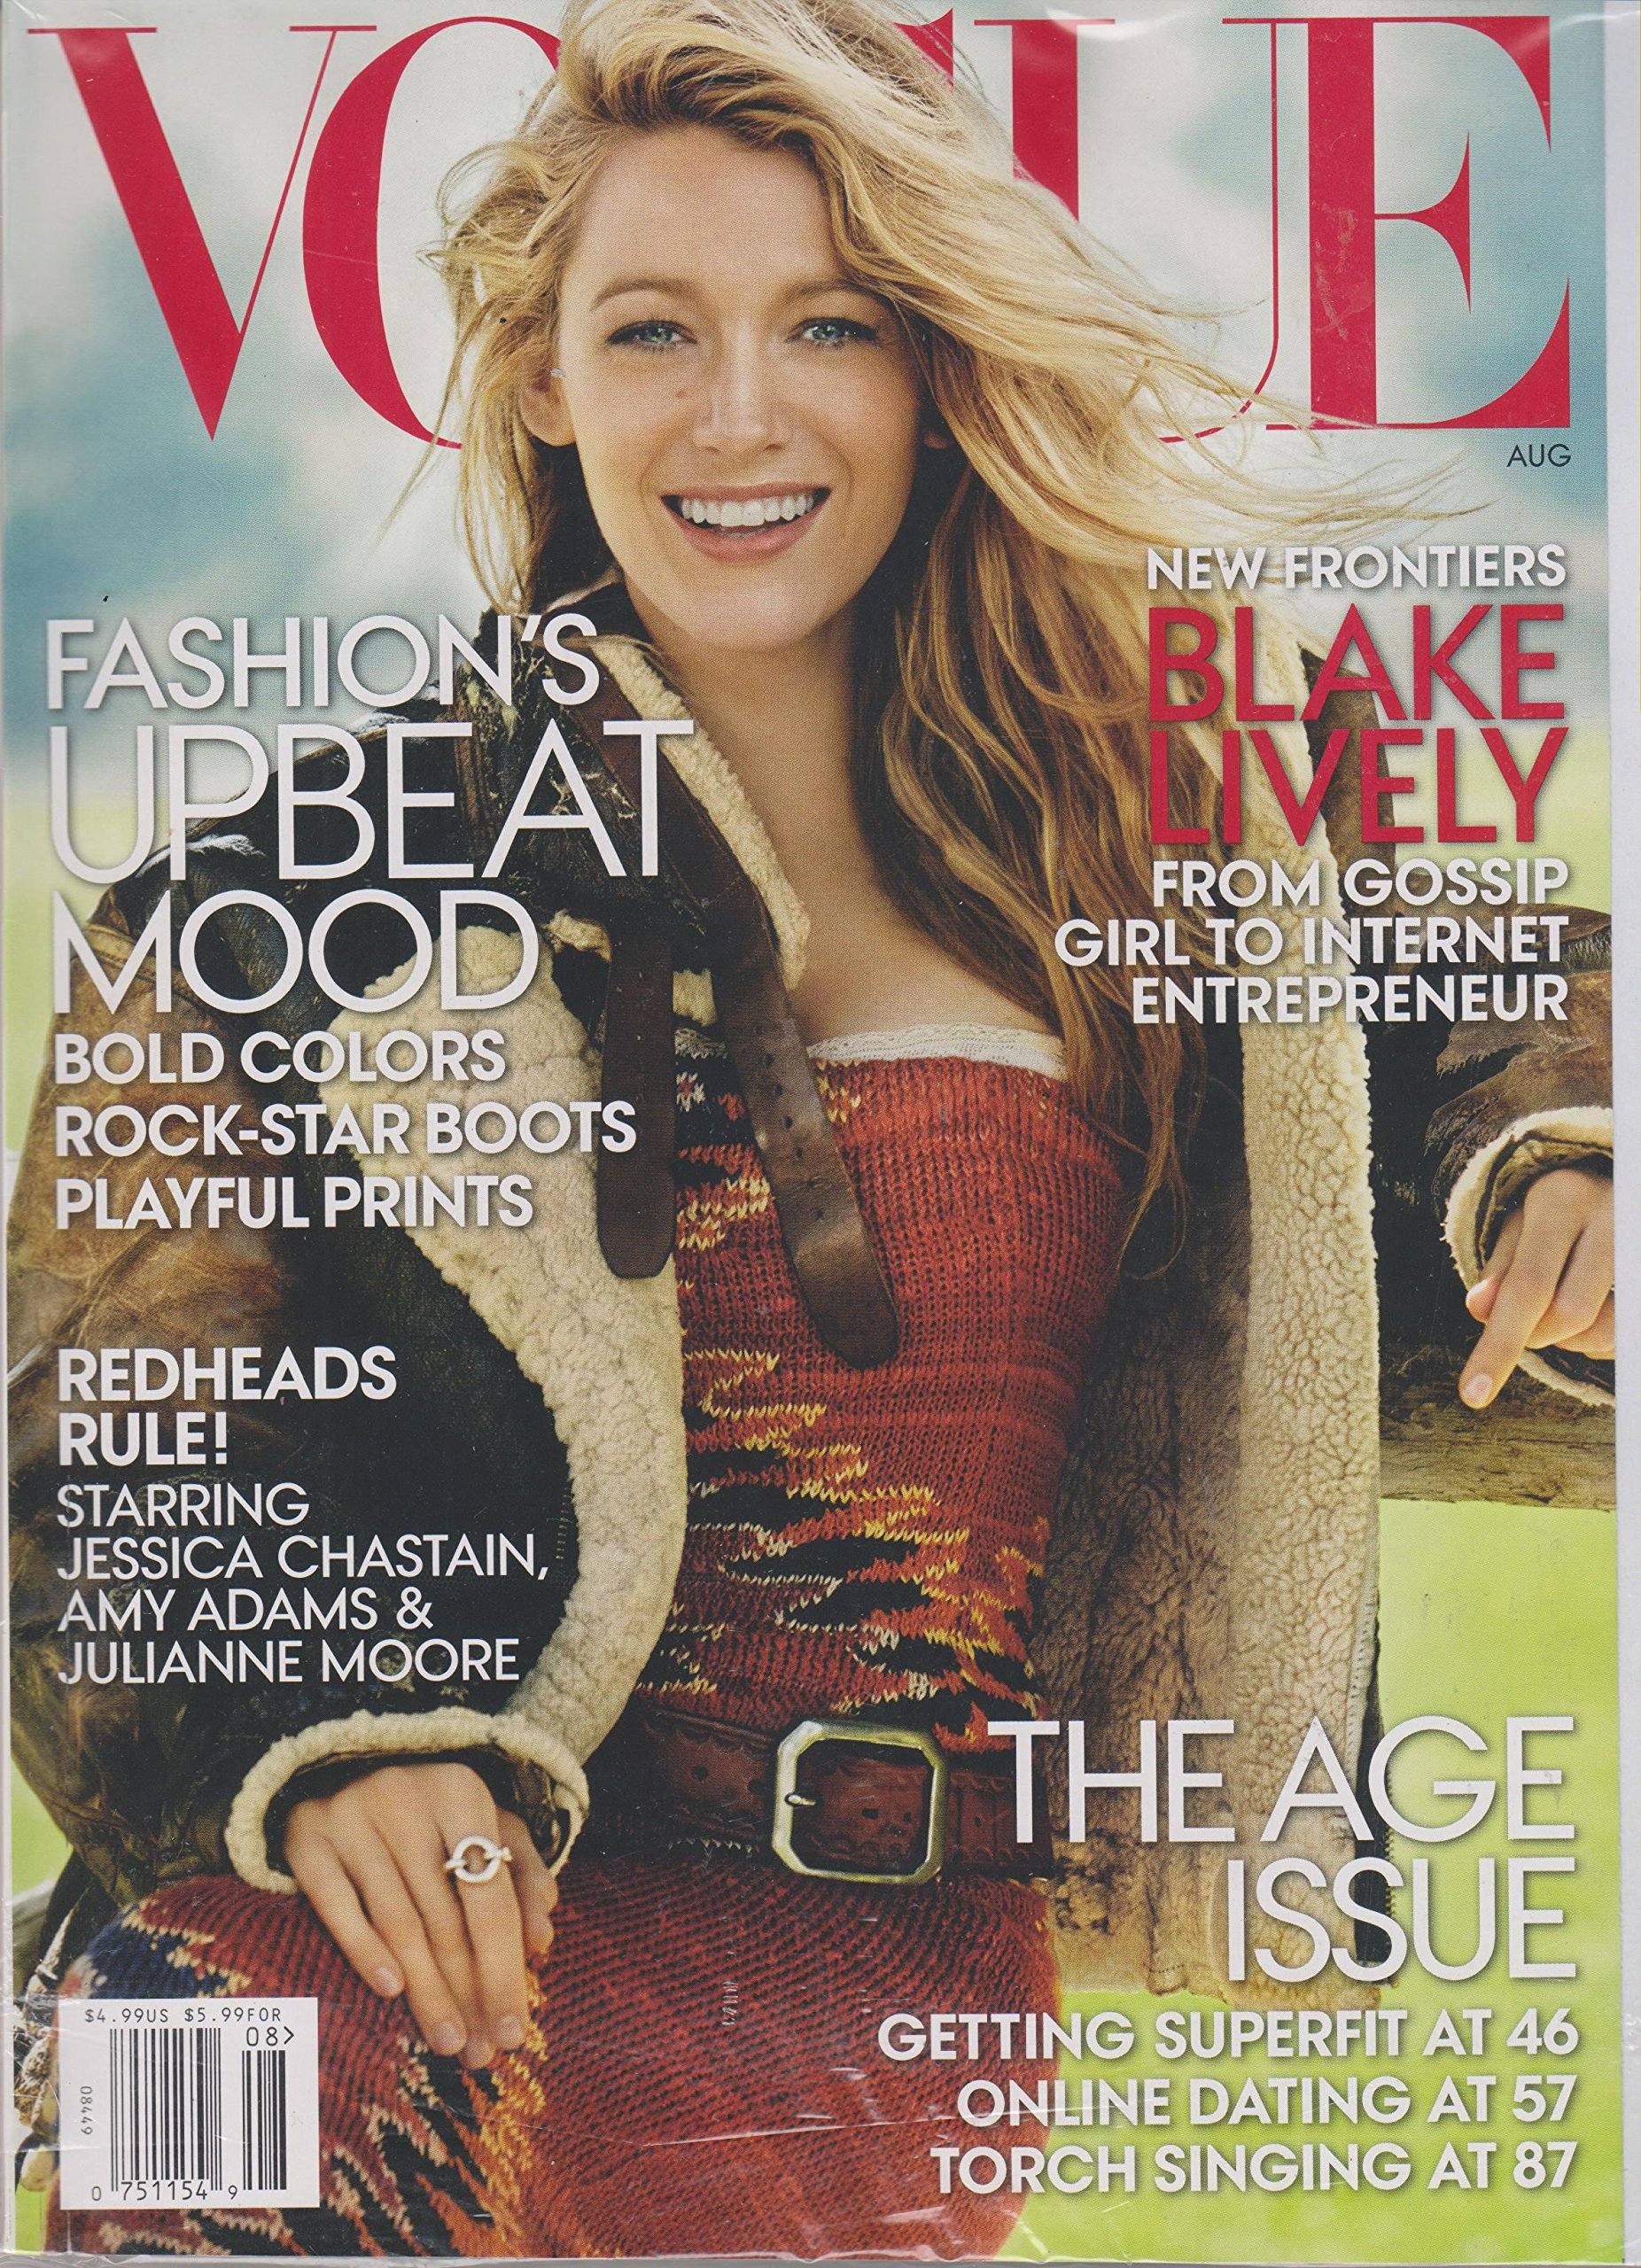 Vogue Magazine August 2014 - Blake Lively: From Gossip Girl to ...